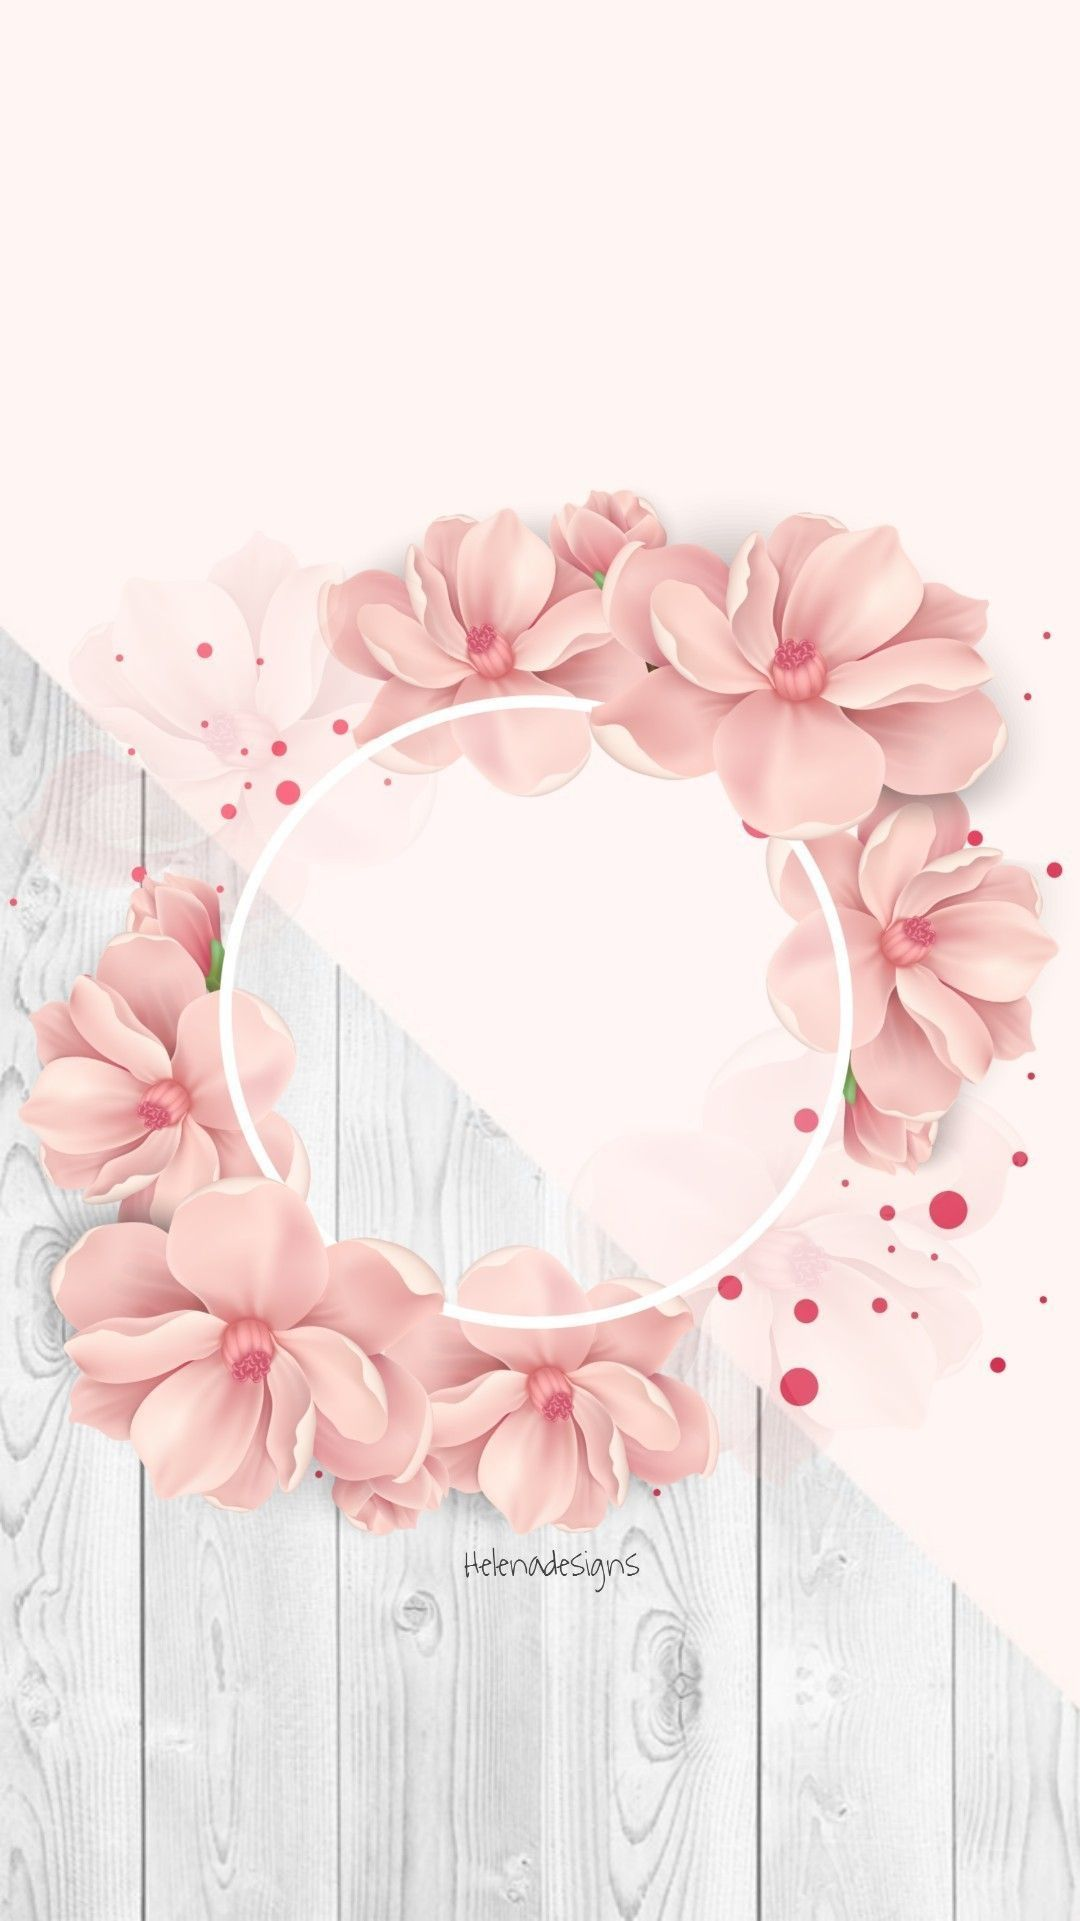 Free Instagram Highlight Cover Template In 2020 Flower Background Wallpaper Girly Wall Art Cute Wallpaper Backgrounds